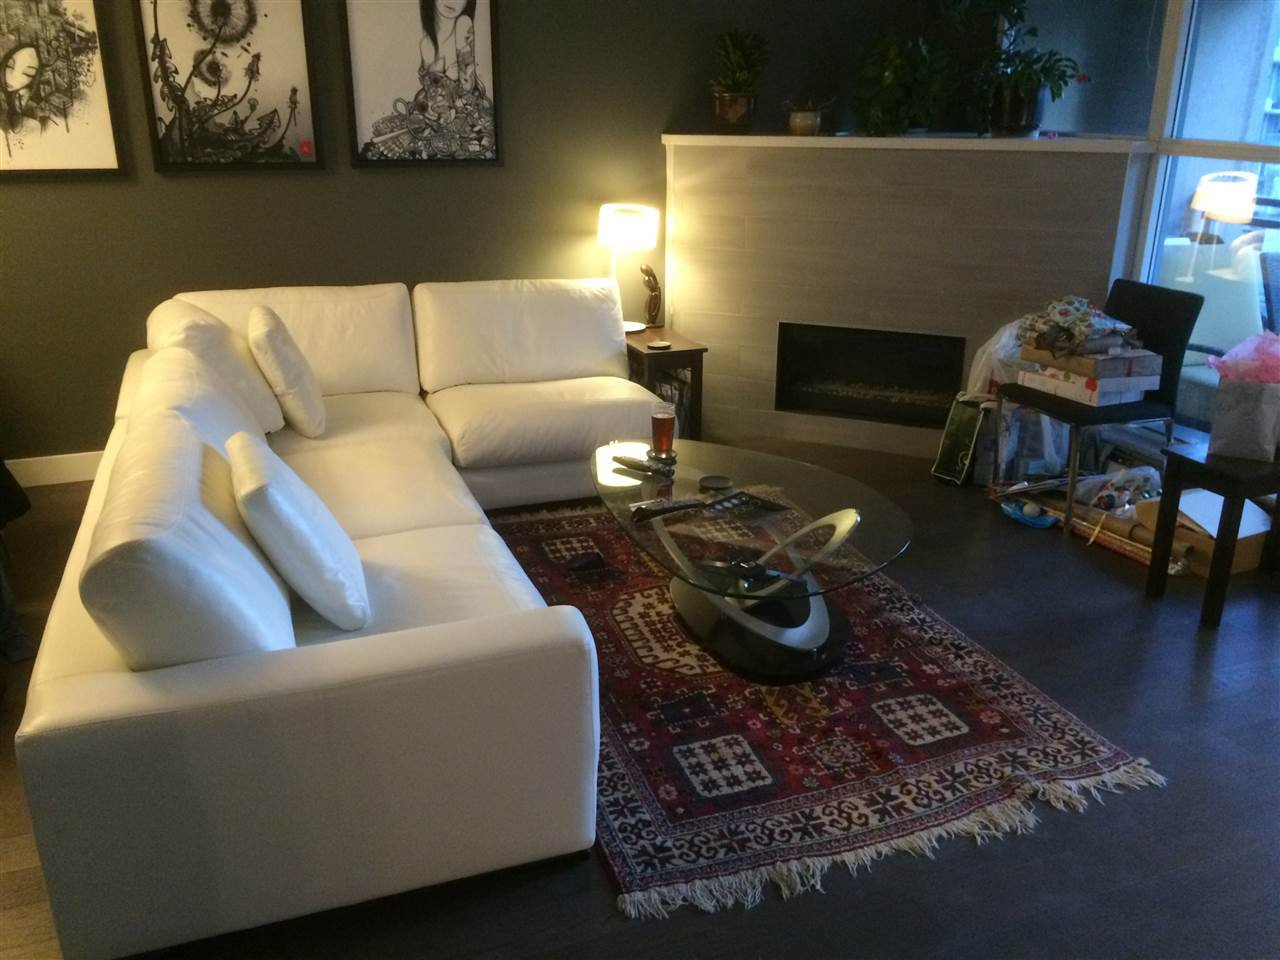 """Photo 3: Photos: 304 183 KEEFER Place in Vancouver: Downtown VW Condo for sale in """"PARIS PLACE"""" (Vancouver West)  : MLS®# R2212938"""